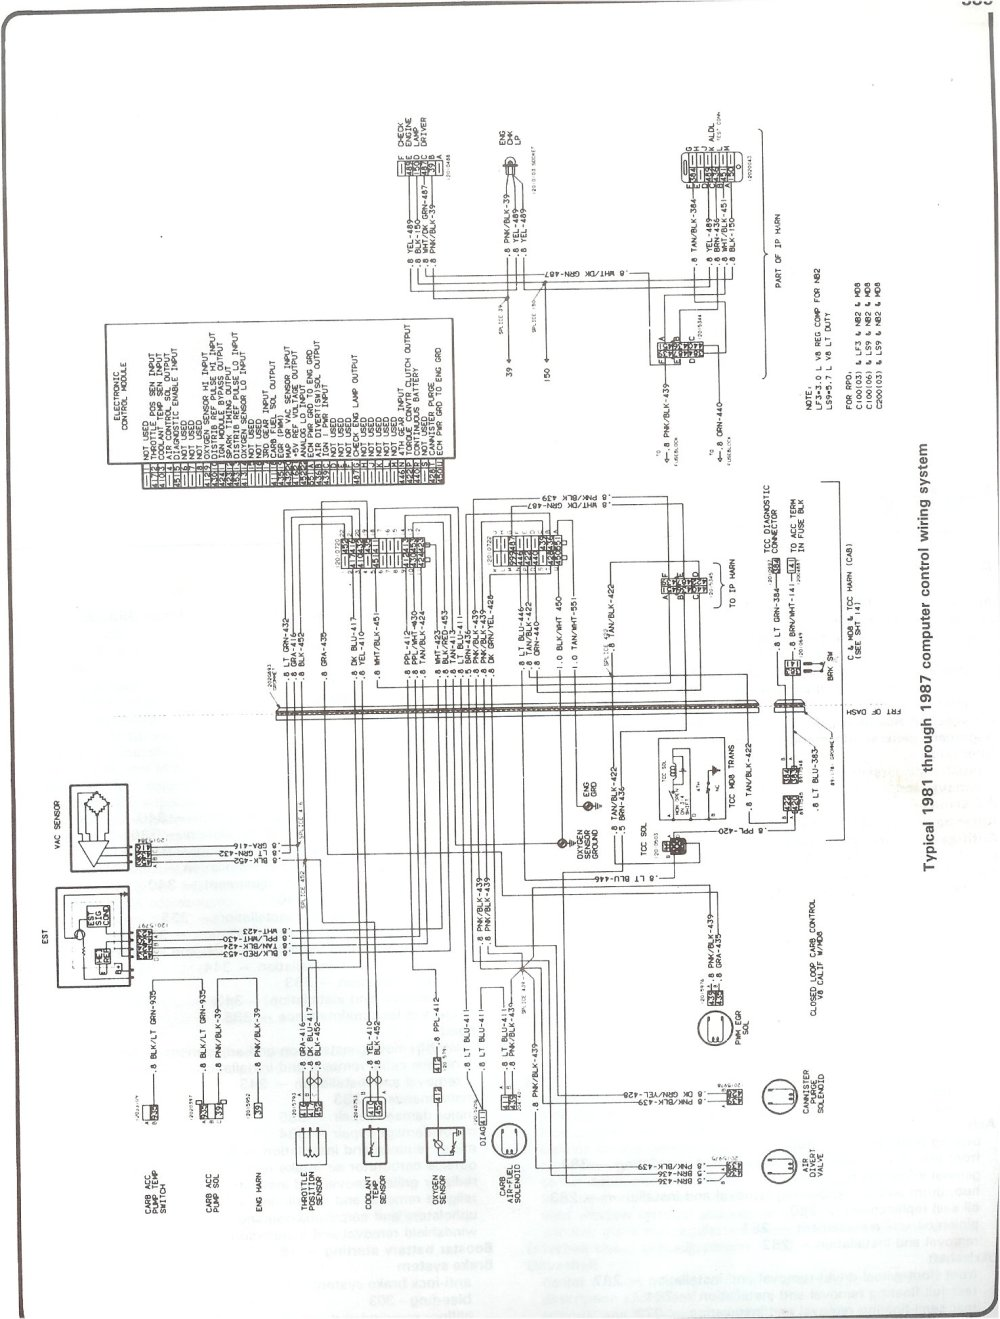 medium resolution of complete 73 87 wiring diagrams rh forum 73 87chevytrucks com 1965 chevy truck wiring diagram 1992 chevy alternator wiring diagram